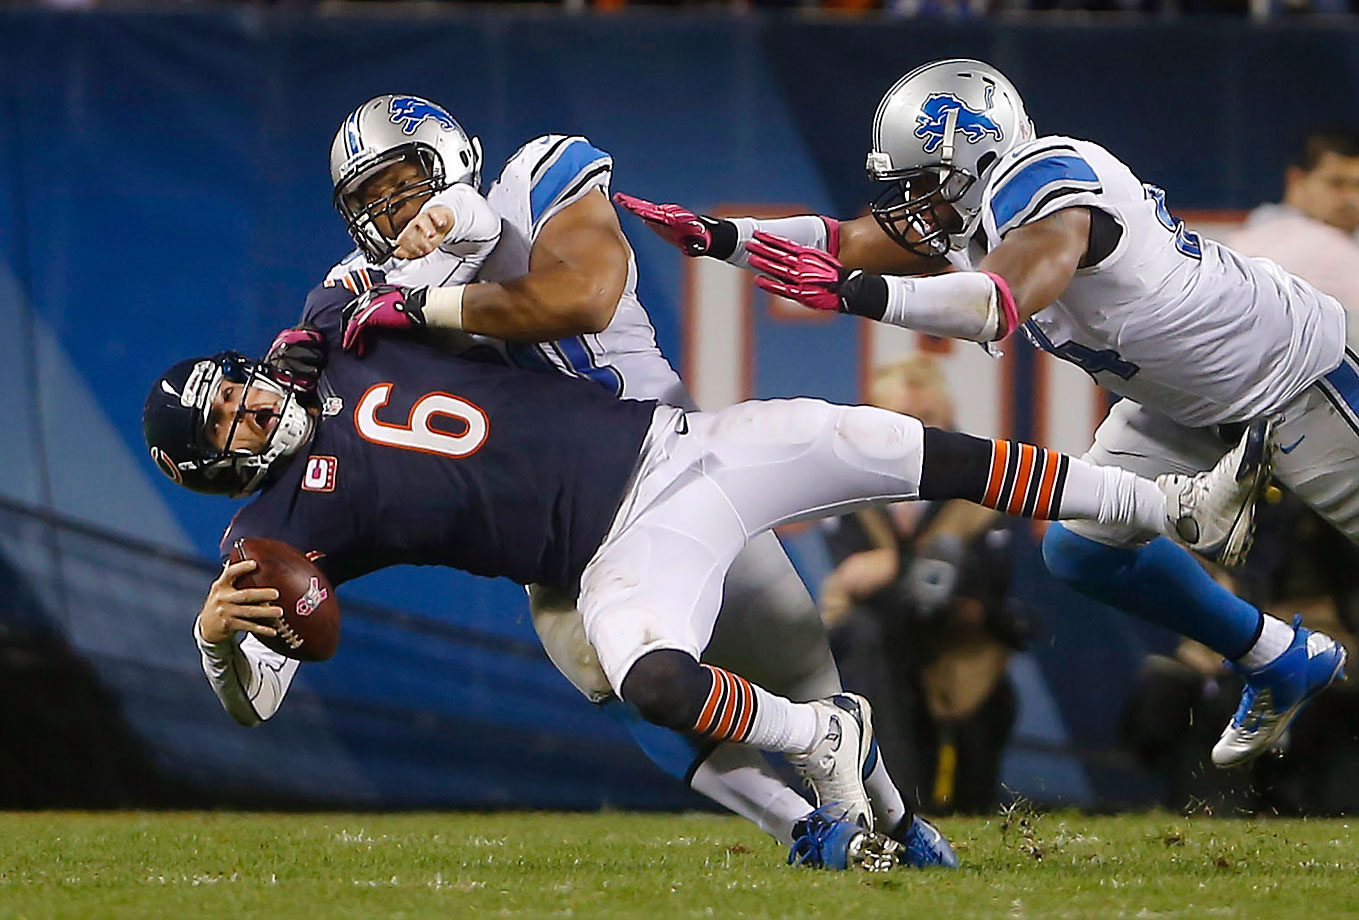 In an October 2012 game against the Chicago Bears, Suh laid a controversial but decidedly legal hit on quarterback Jay Cutler, a player that he has terrorized in the past. Suh chased Cutler to the sidelines before grabbing his shoulder pad and violently driving the quarterback into the ground. The NFL determined not to fine Suh for the hit.